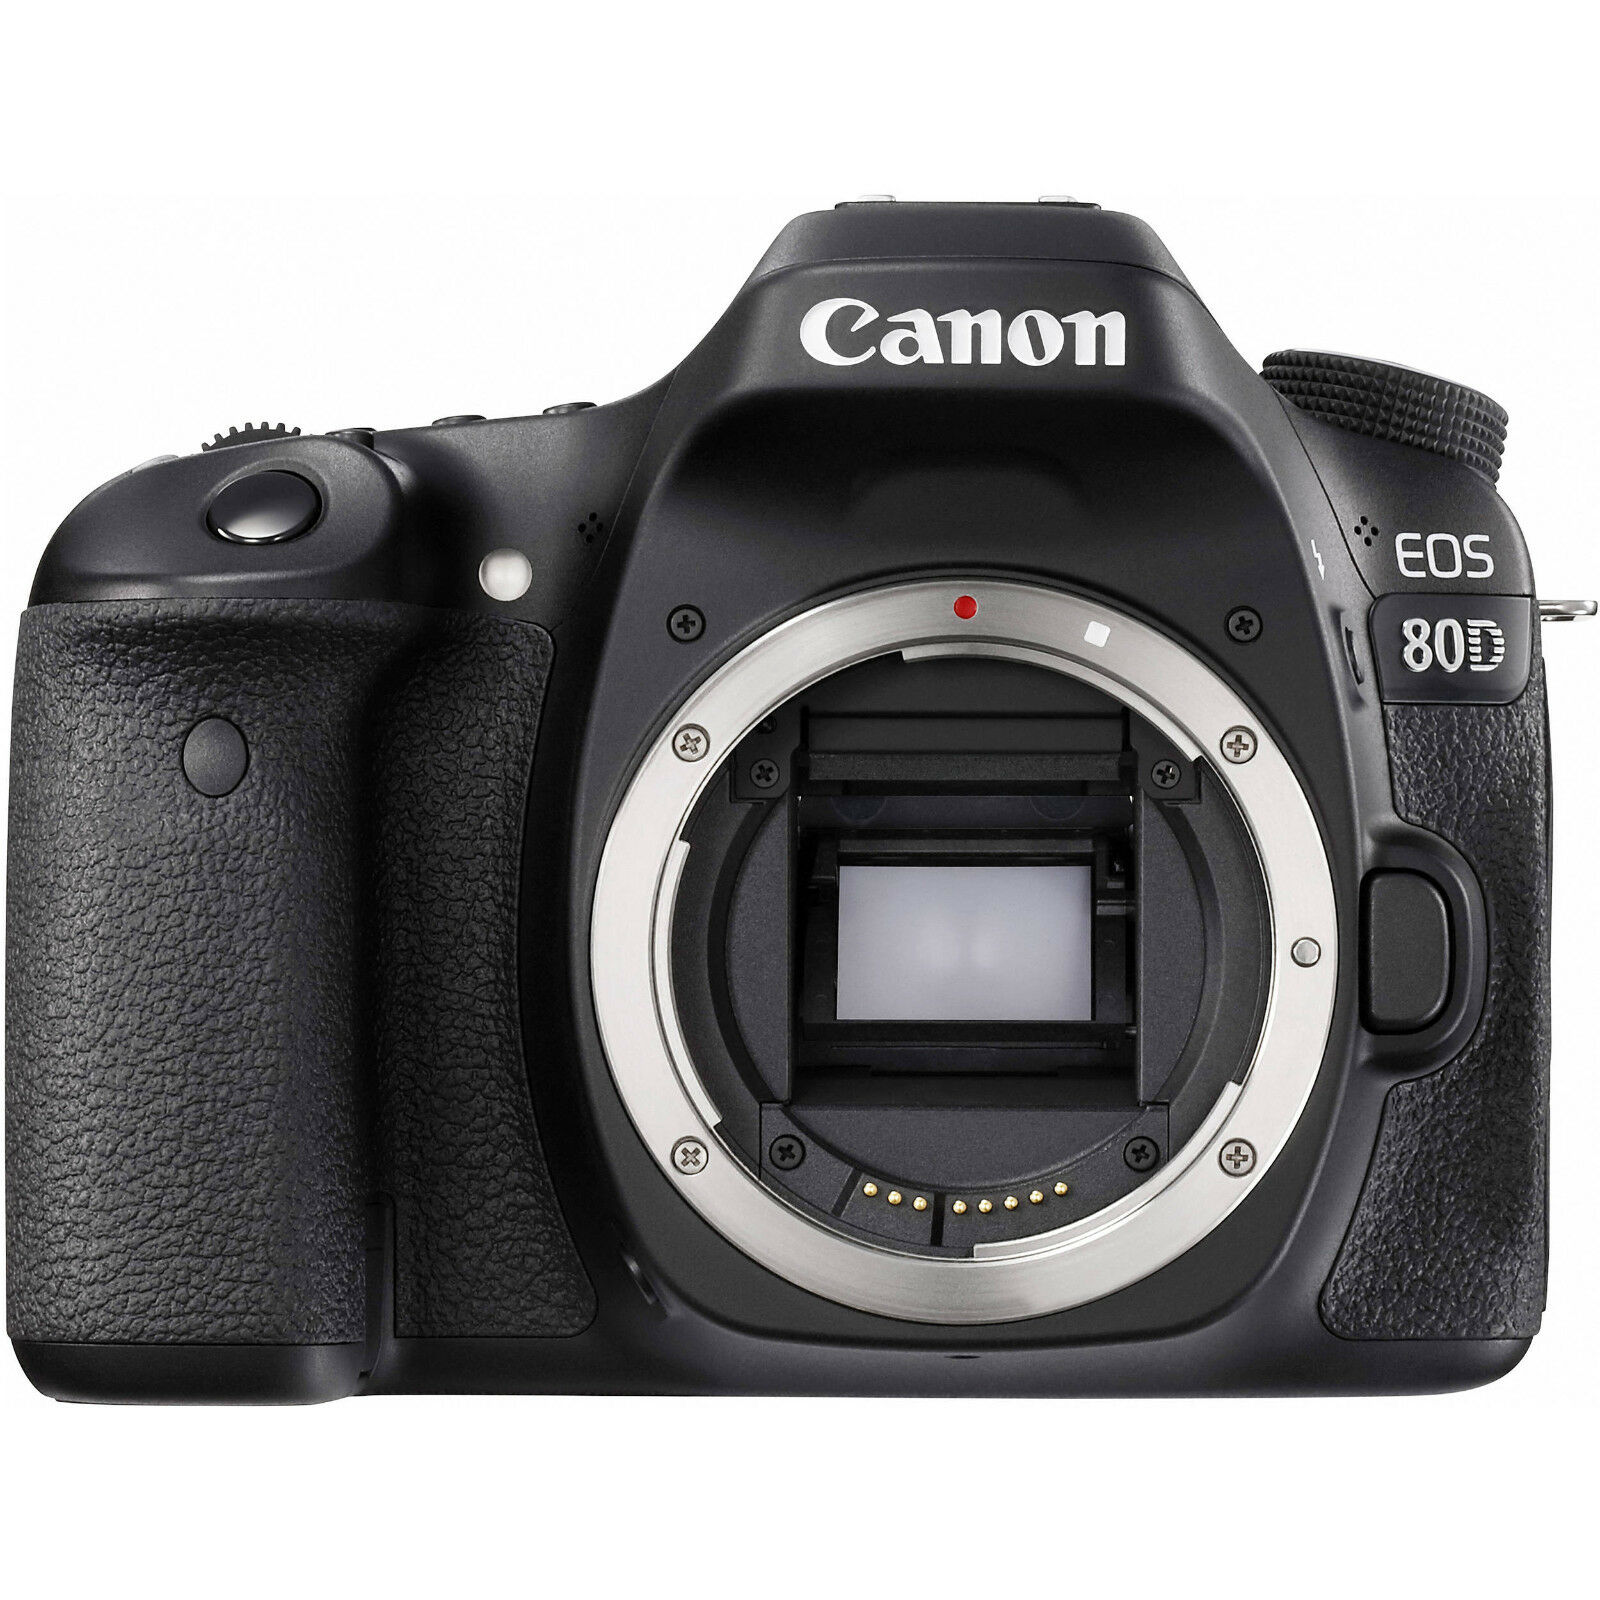 $907.99 - Canon EOS 80D 24.2 MP Dslr Digital slr camera (Body Only) - BRAND NEW WiFi